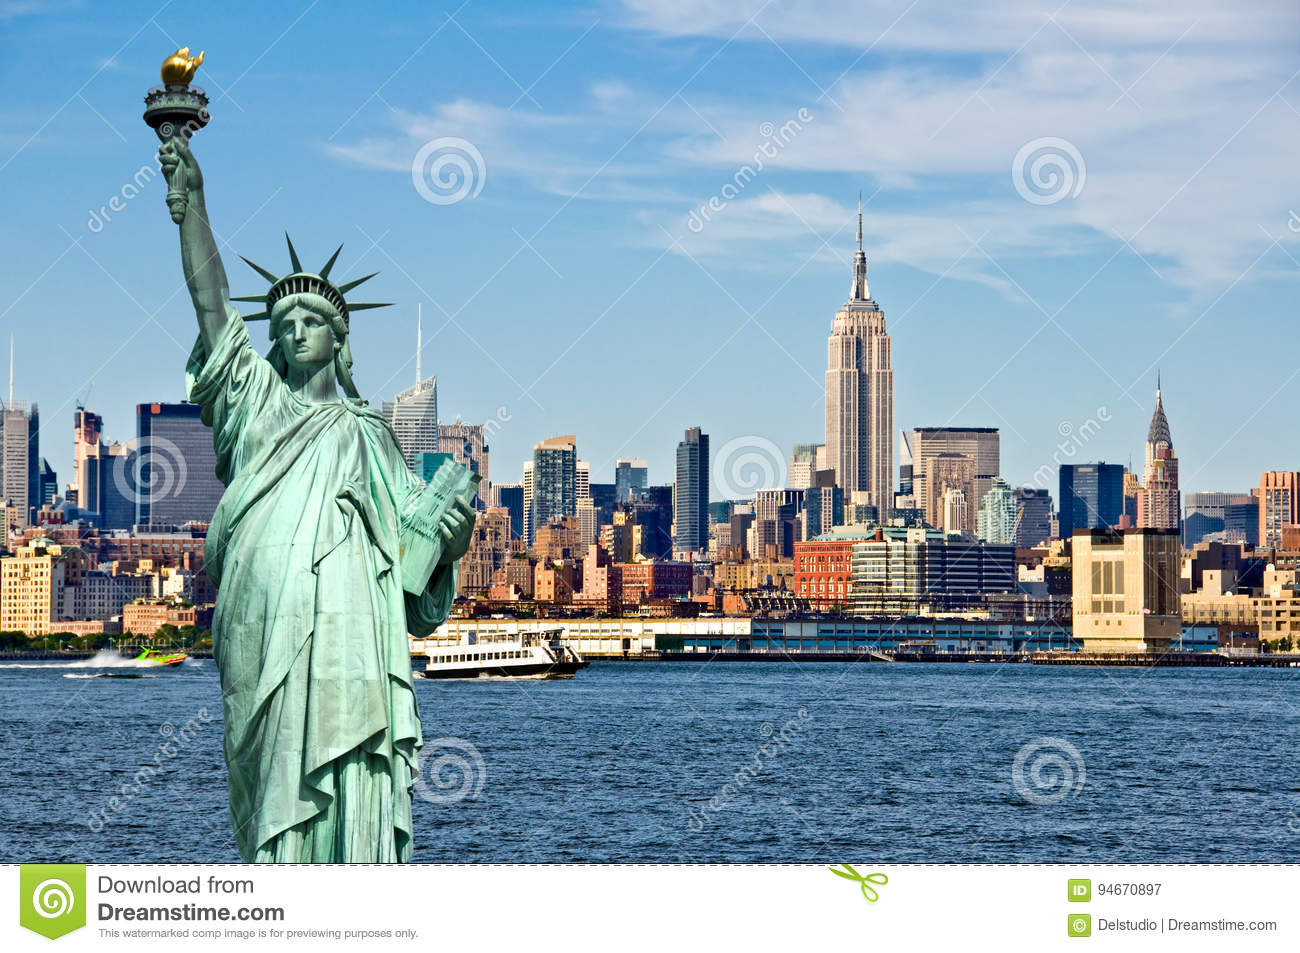 New York skyline and the Statue of Liberty, New York City collage, travel and tourism postcard concept